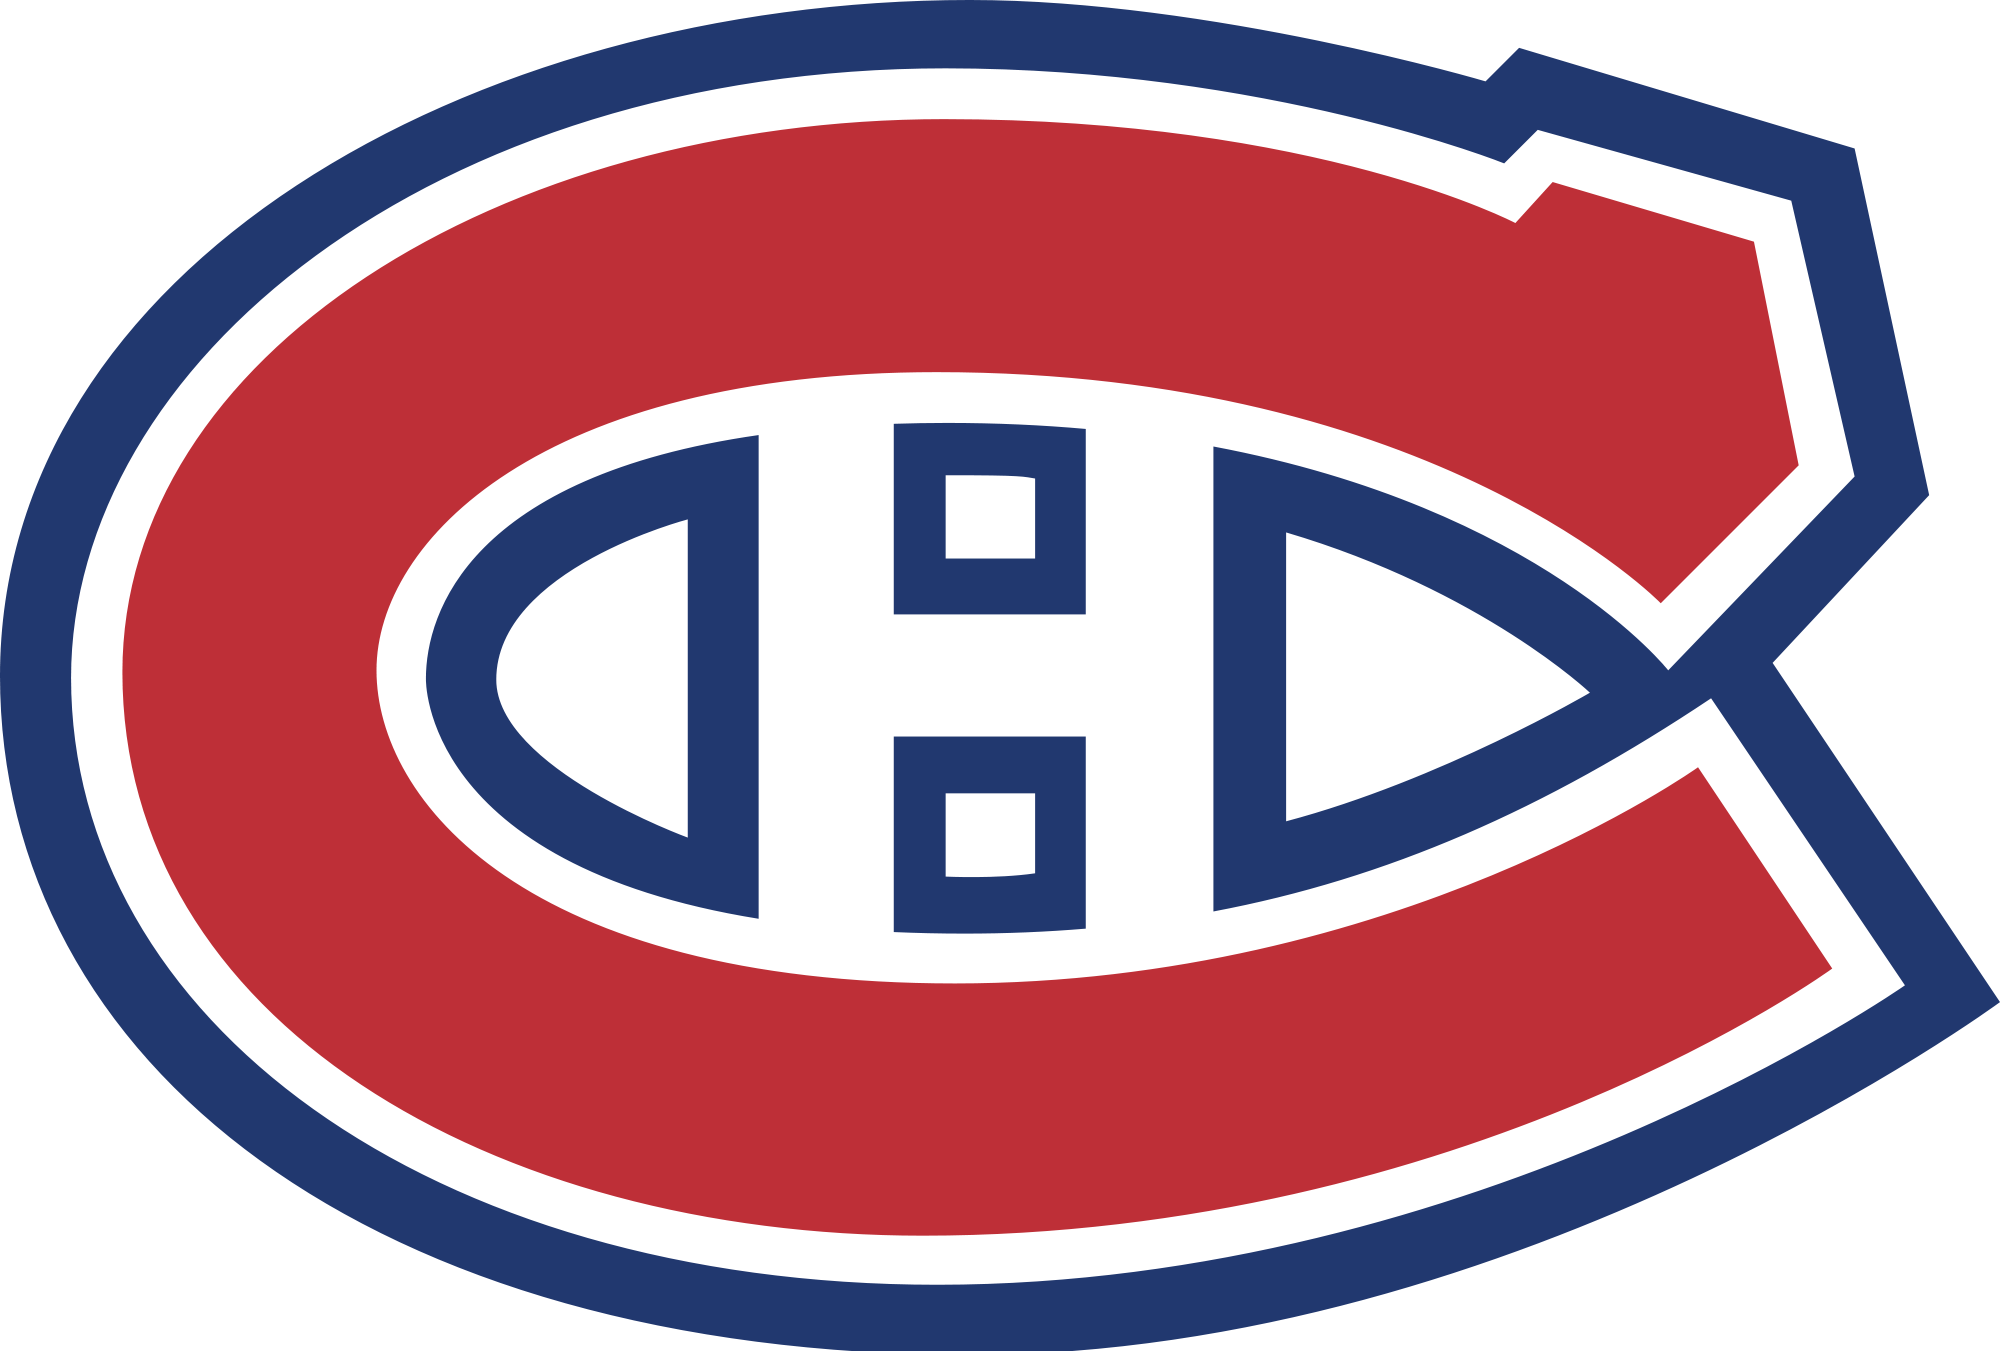 Wallpapers Montreal Canadiens 1152 X 864 385 Kb Jpeg HD Wallpapers 2000x1351